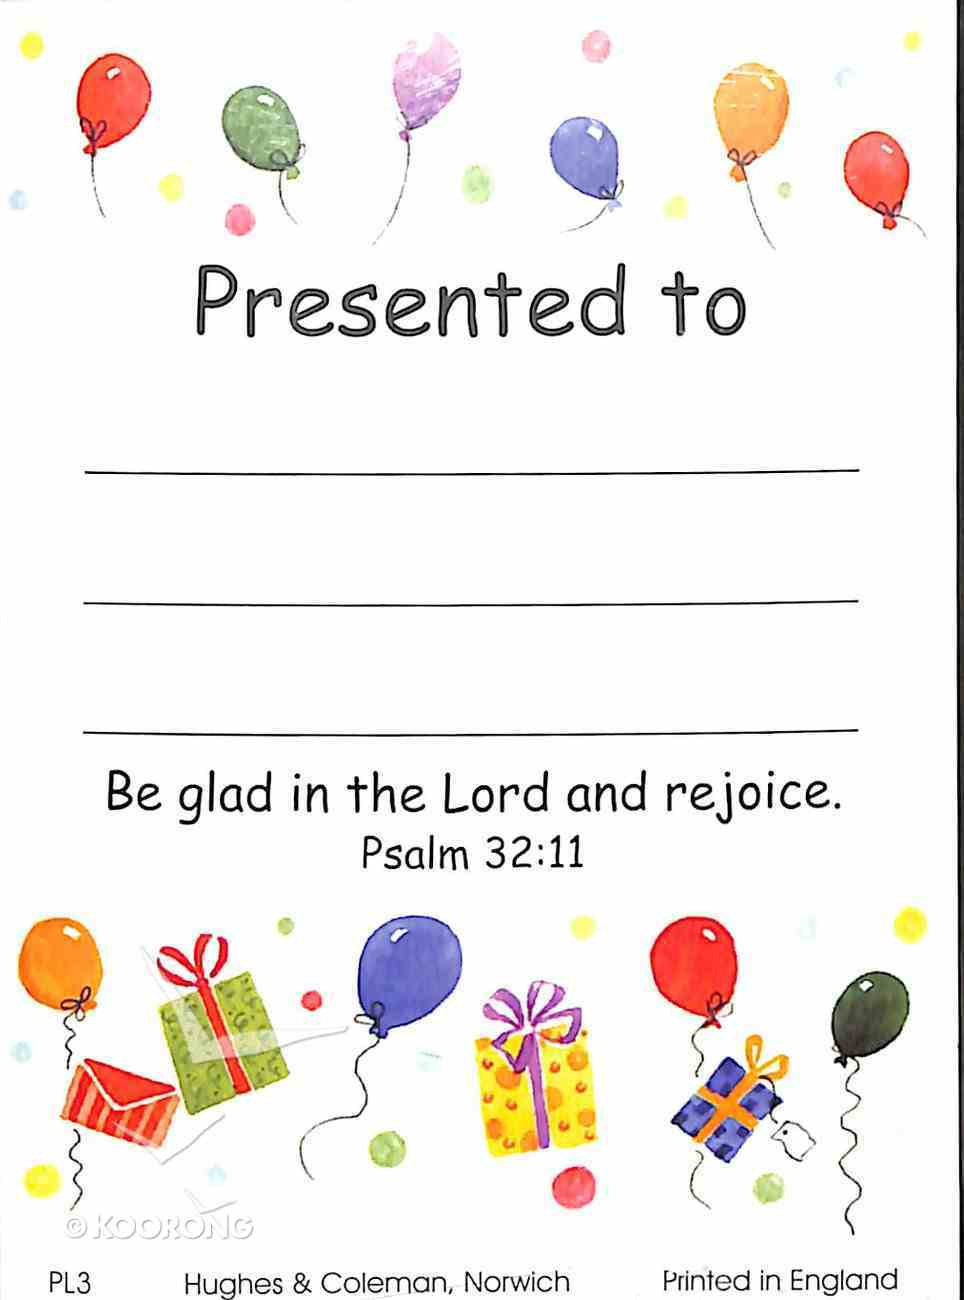 Presentation Labels: Balloons, Presents, Psalm 32:11 (100 Pack) Stationery